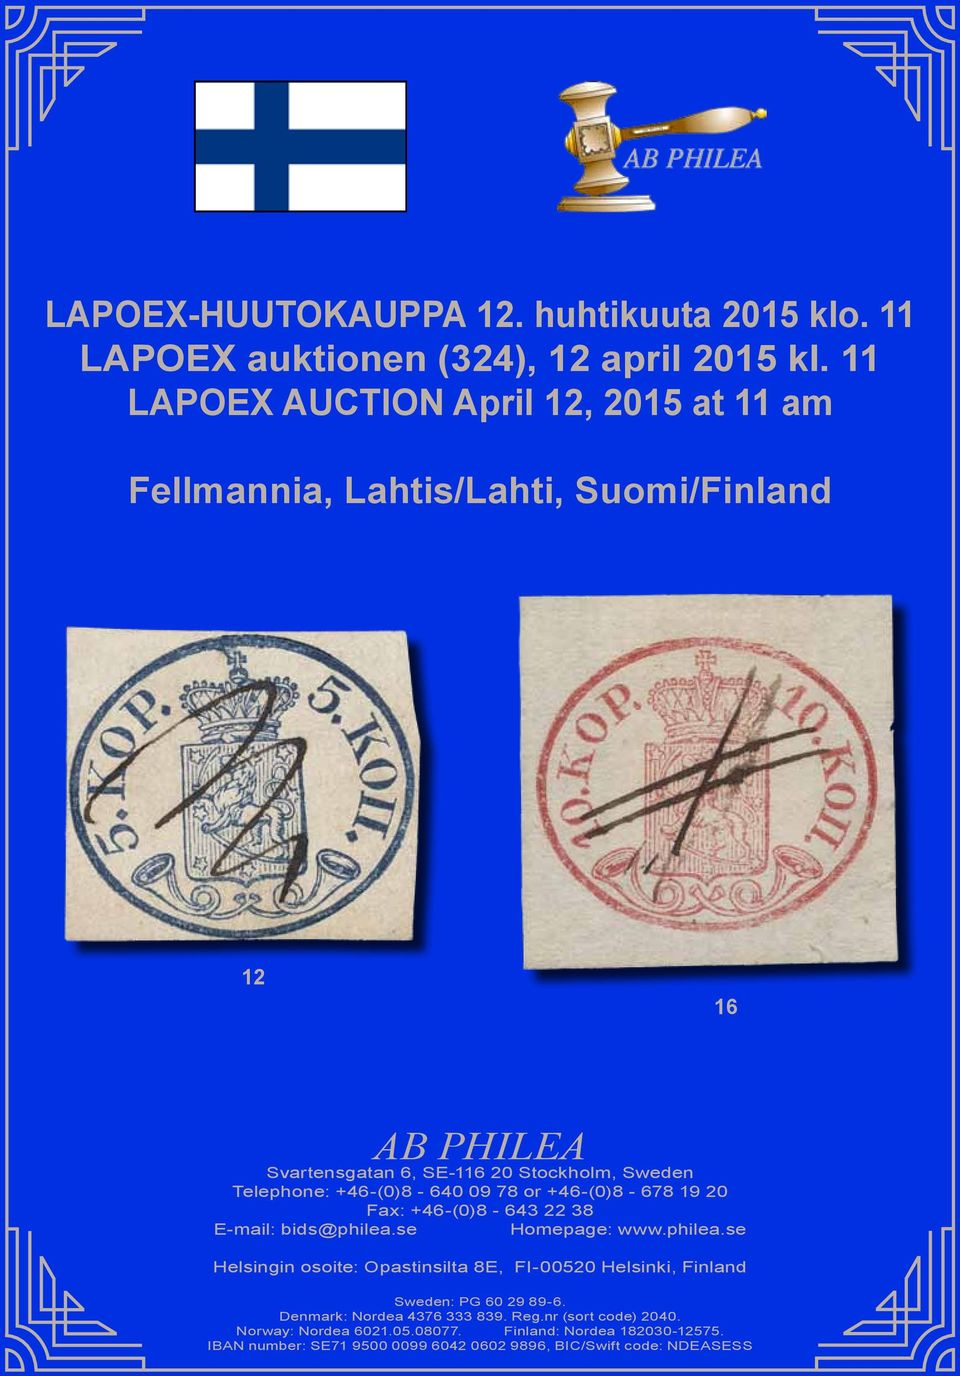 +46-(0)8-640 09 78 or +46-(0)8-678 19 20 Fax: +46-(0)8-643 22 38 E-mail: bids@philea.